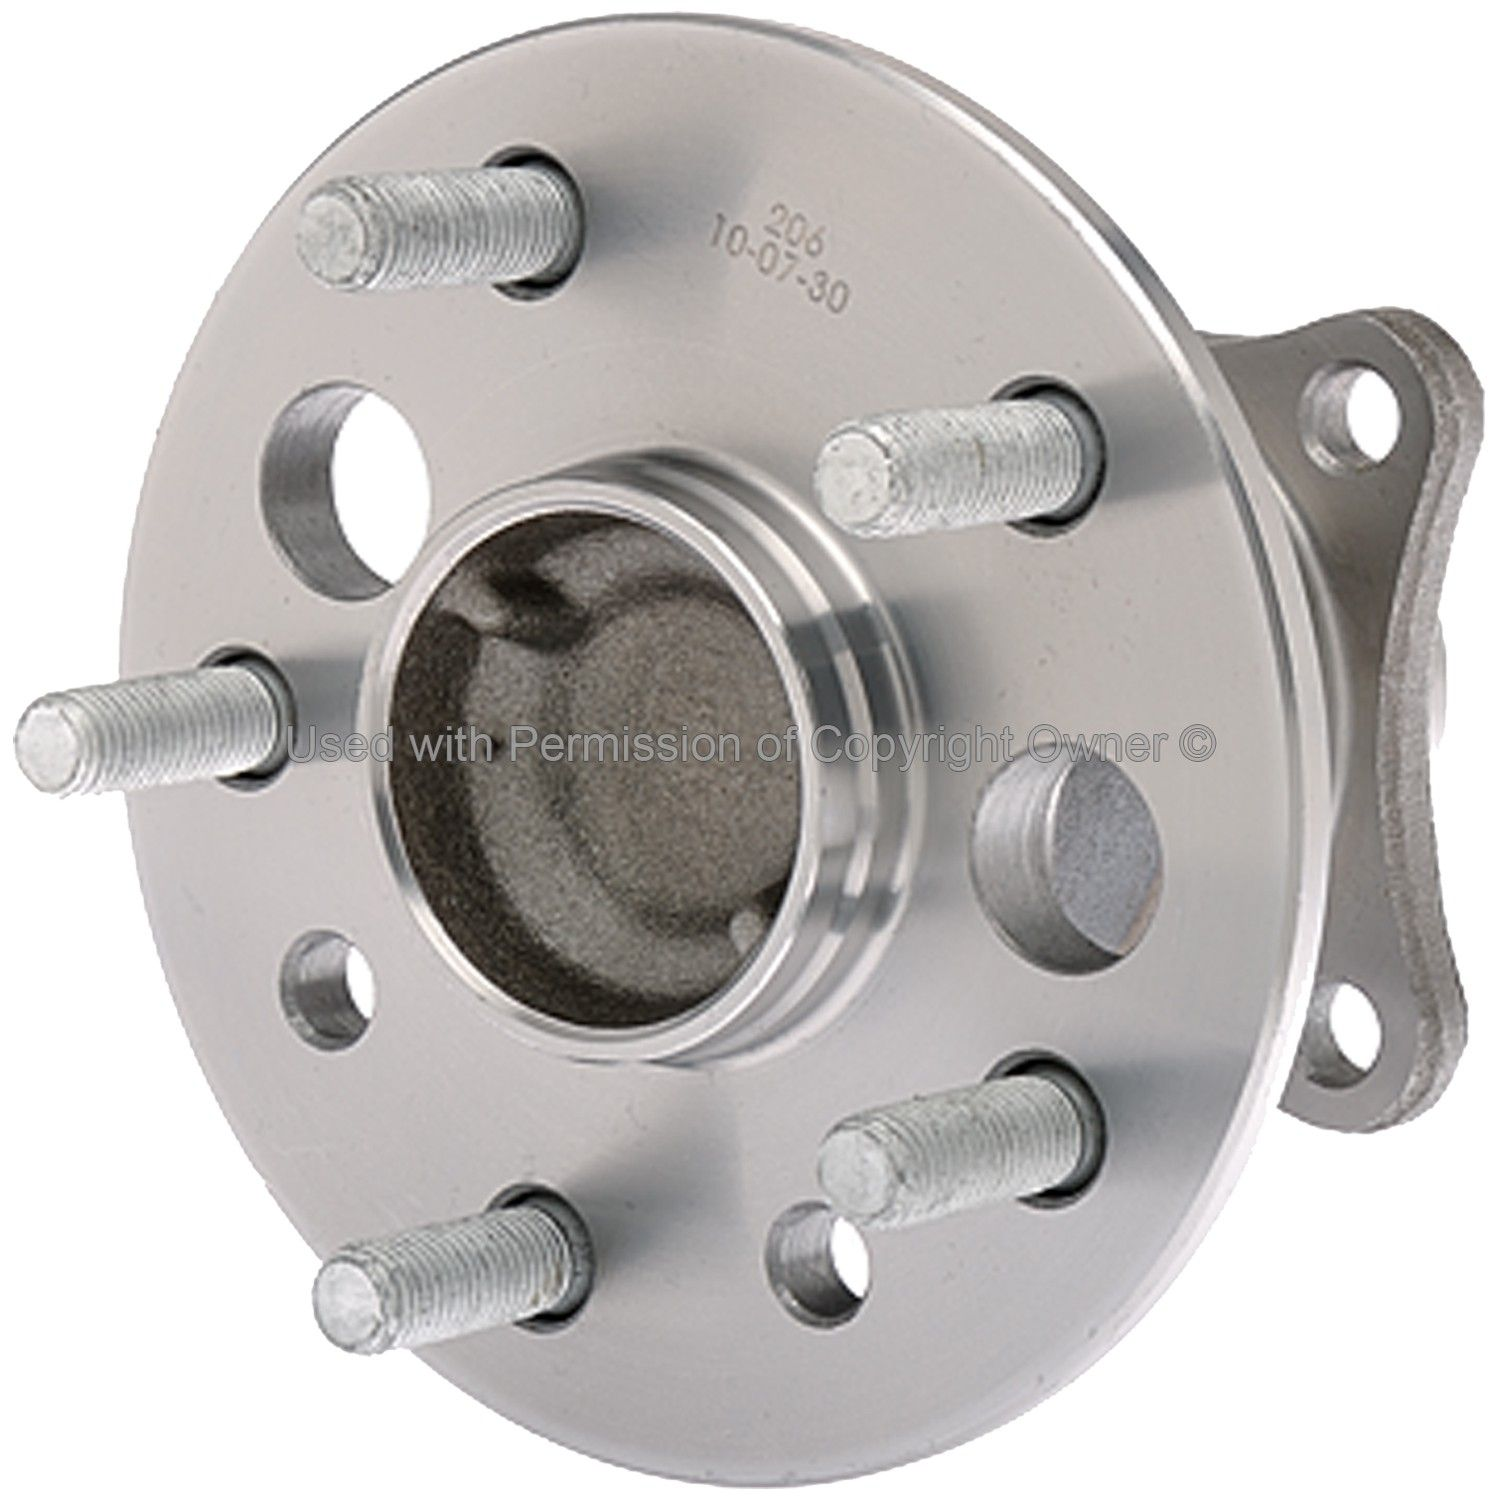 Toyota Highlander Wheel Bearing and Hub Assembly Replacement